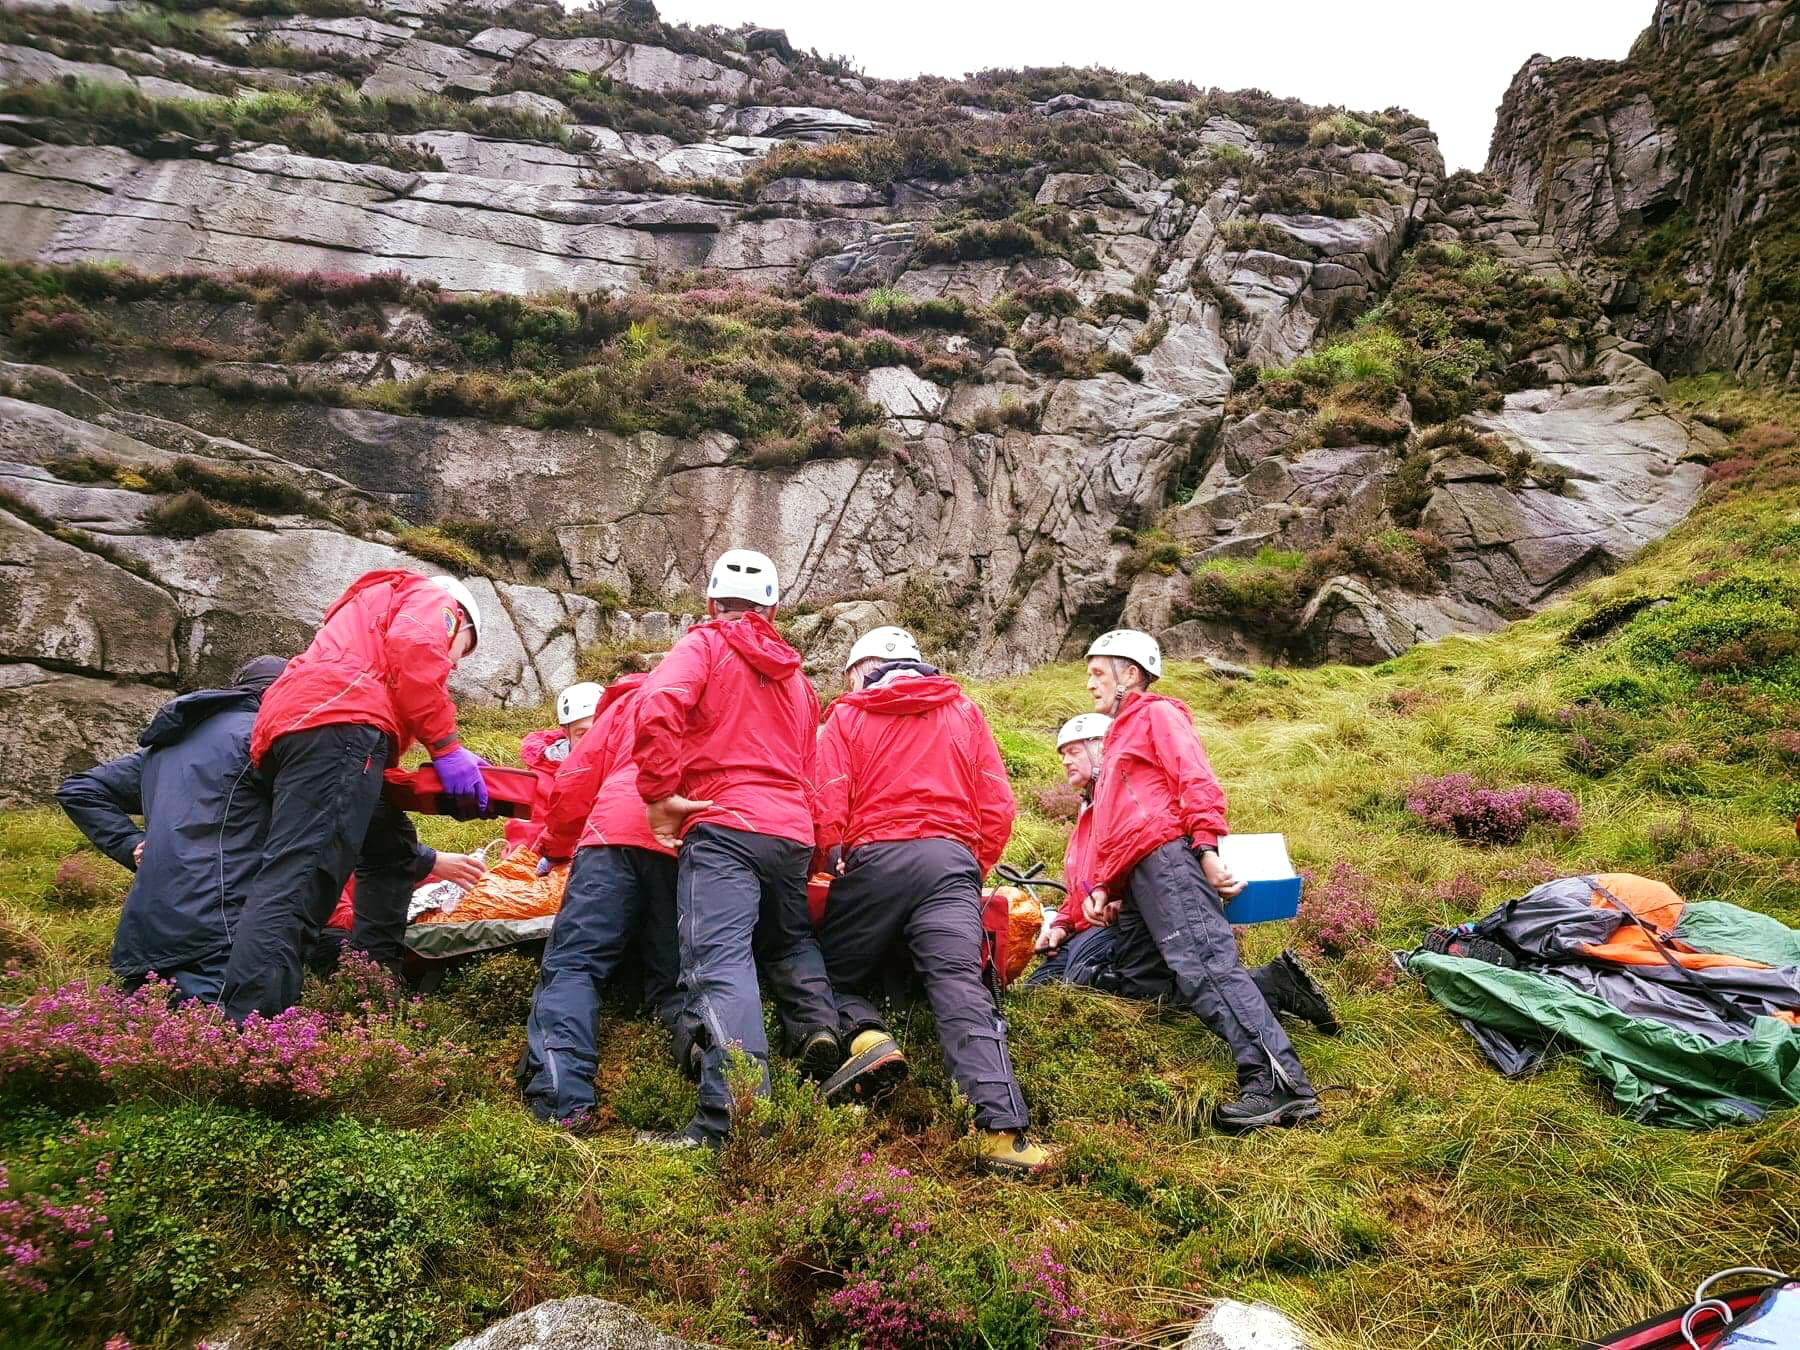 Hiker taken to hospital after being hit by falling sheep